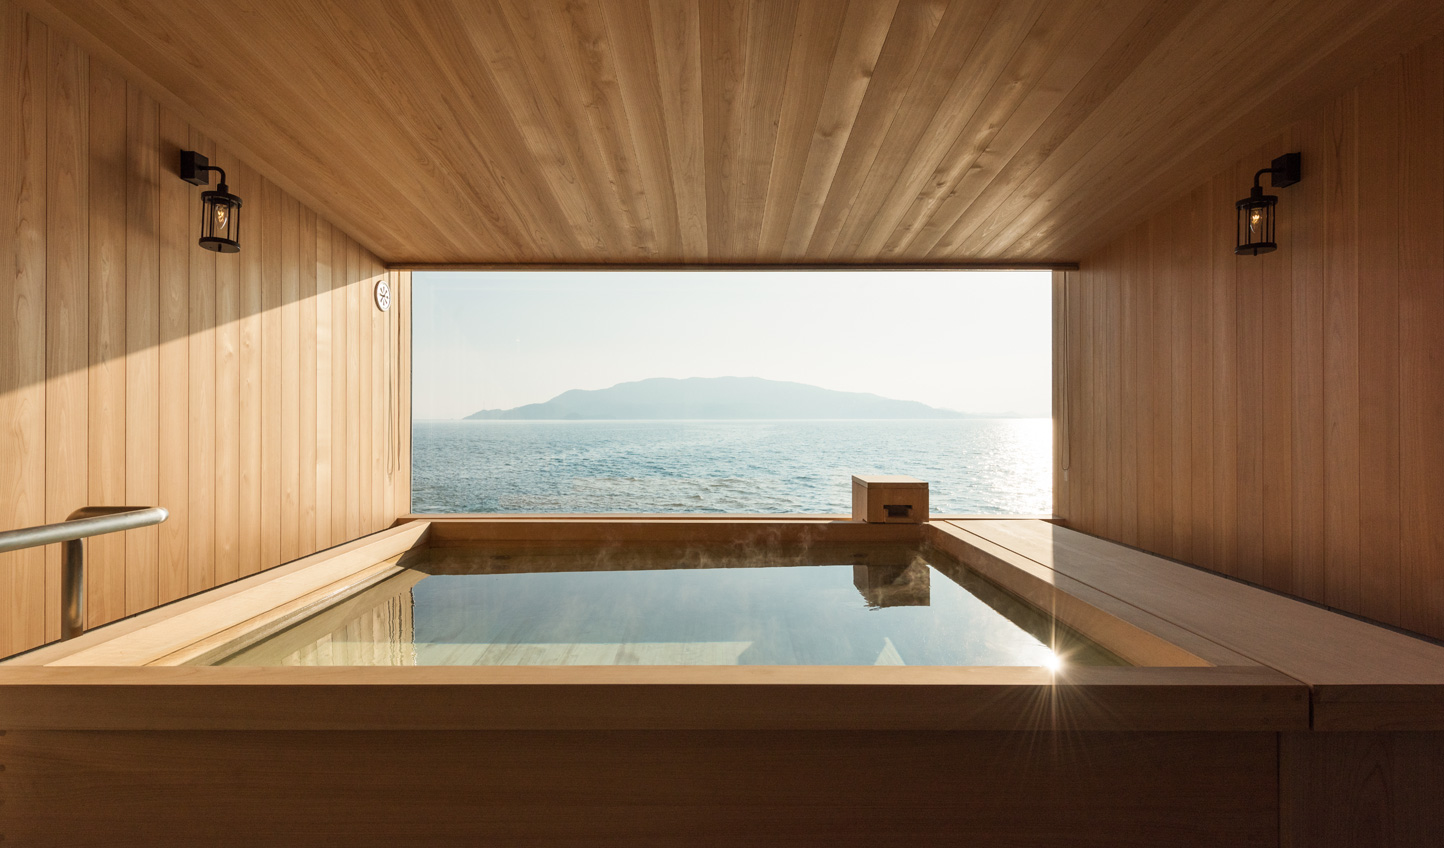 Whether on land or at sea, experience the Japanese tradition of a cypress bath